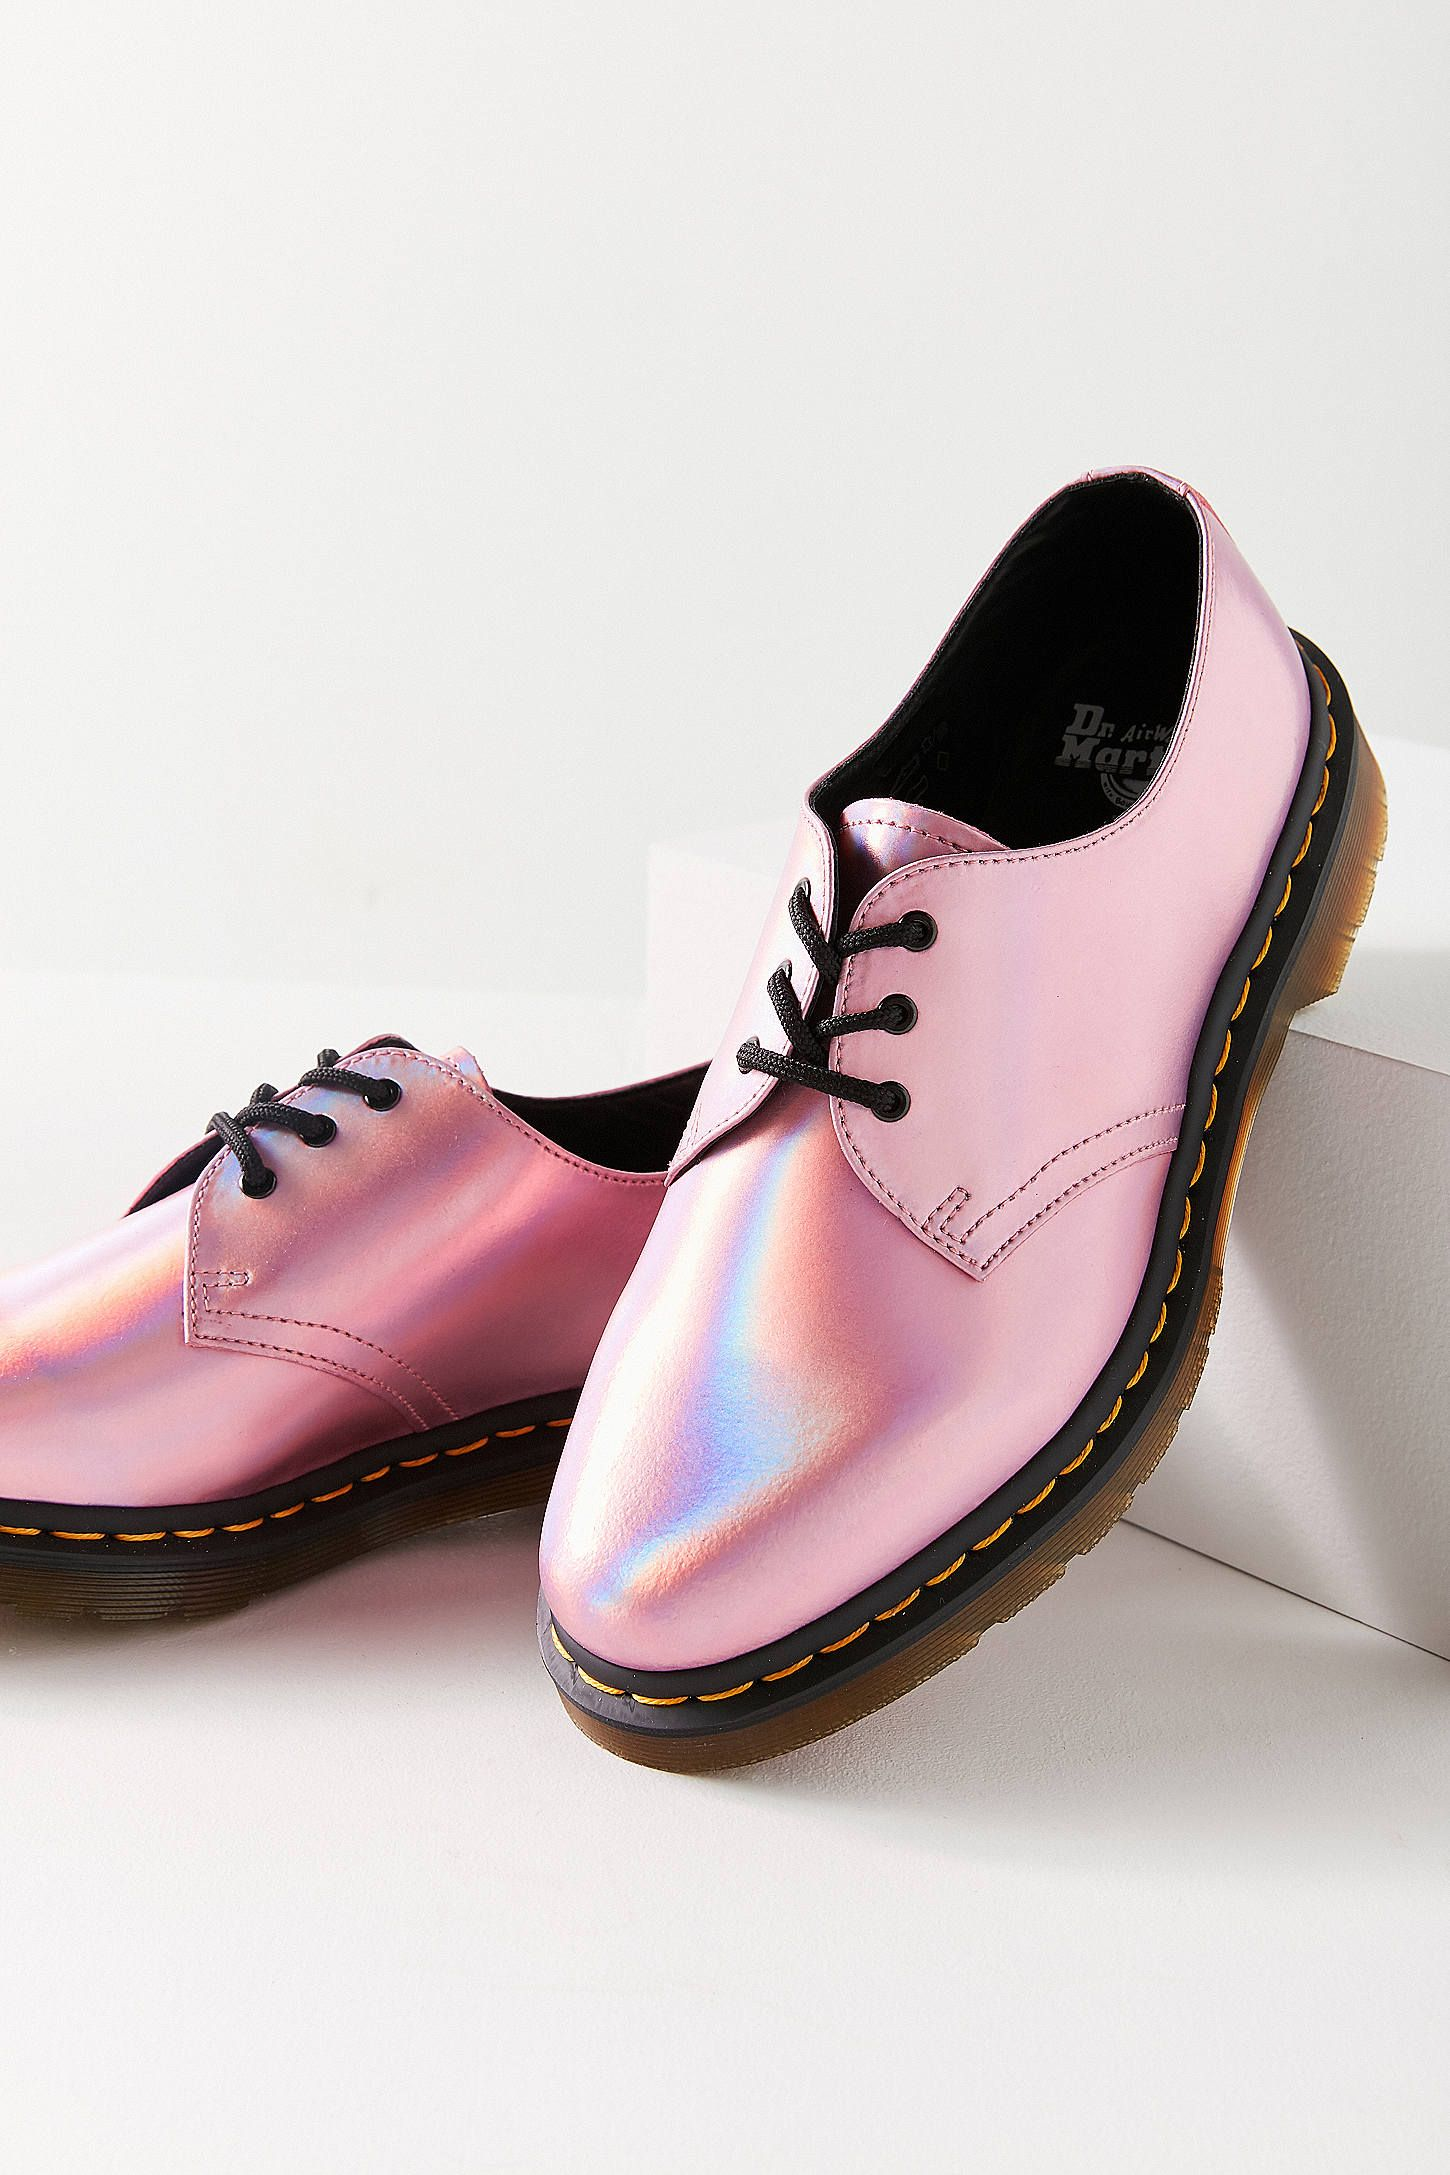 5acc9e0705 Shop Dr. Martens 1461 Iced Metallic Mallow Pink Oxford at Urban Outfitters  today. We carry all the latest styles, colors and brands for you to choose  from ...